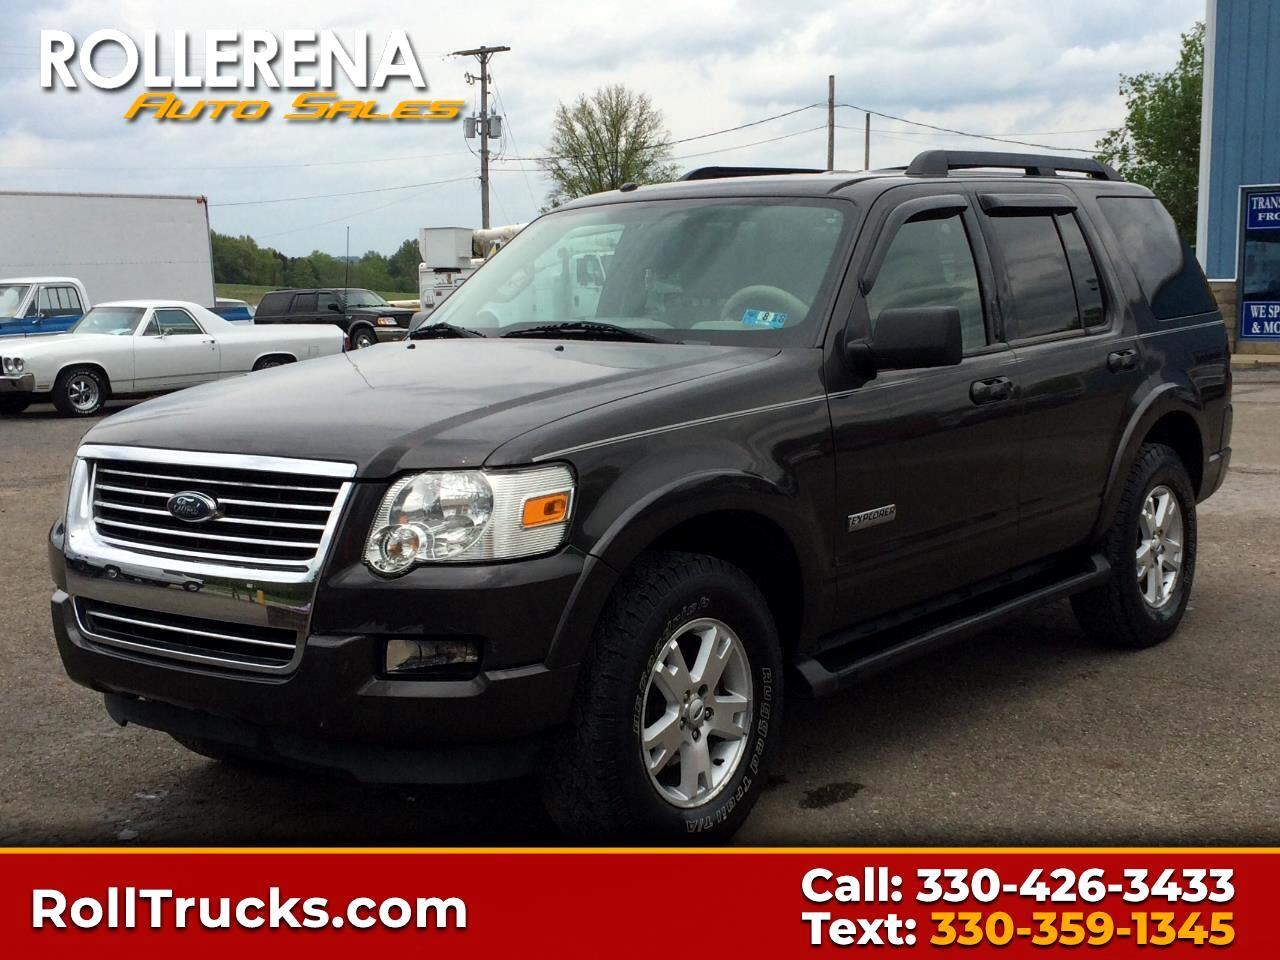 2007 Ford Explorer 4WD